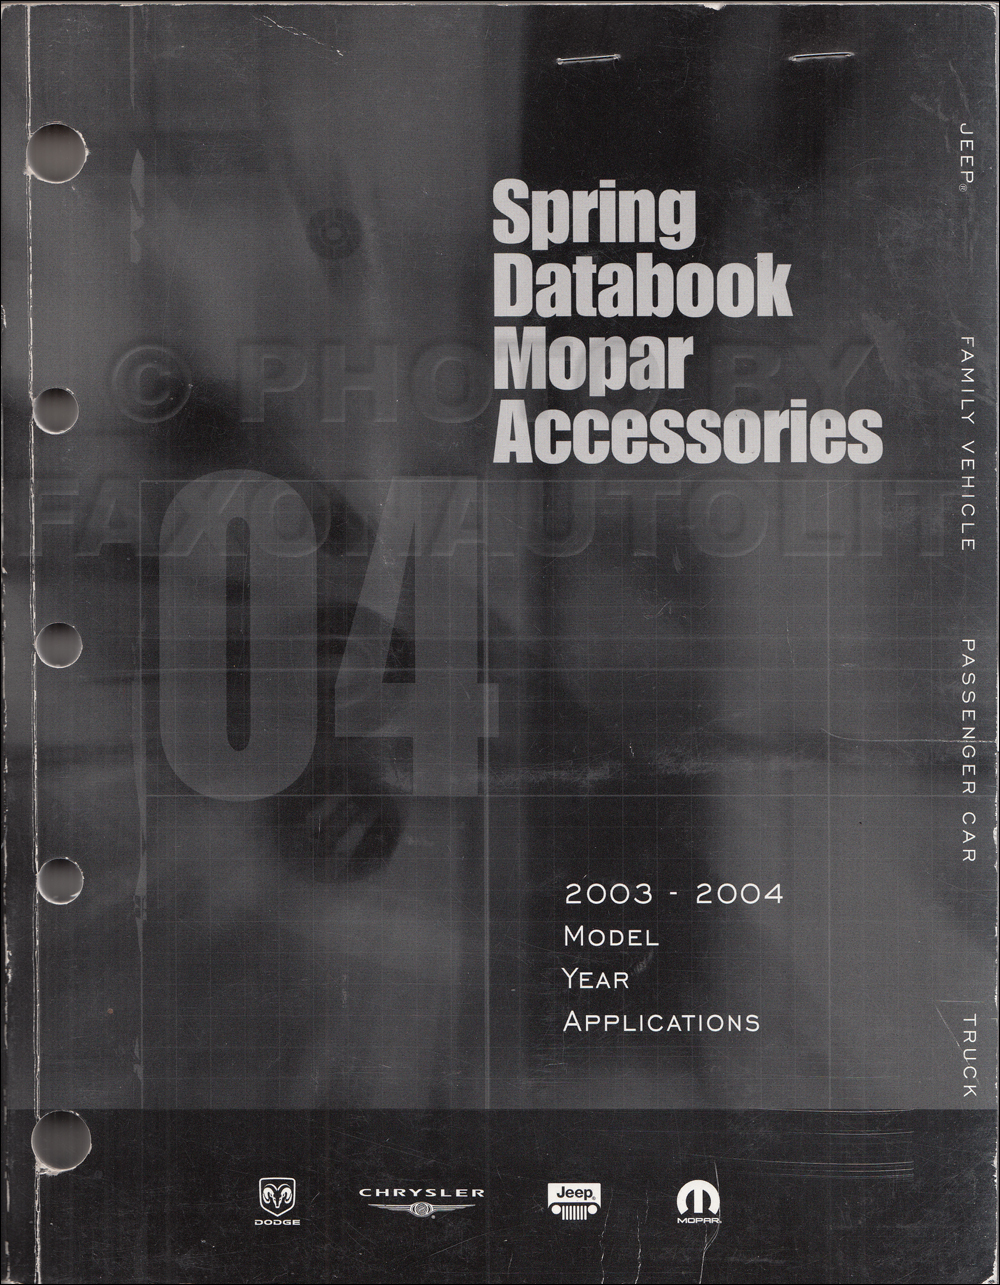 2003-2004 MoPar Accessories Databook Original Spring